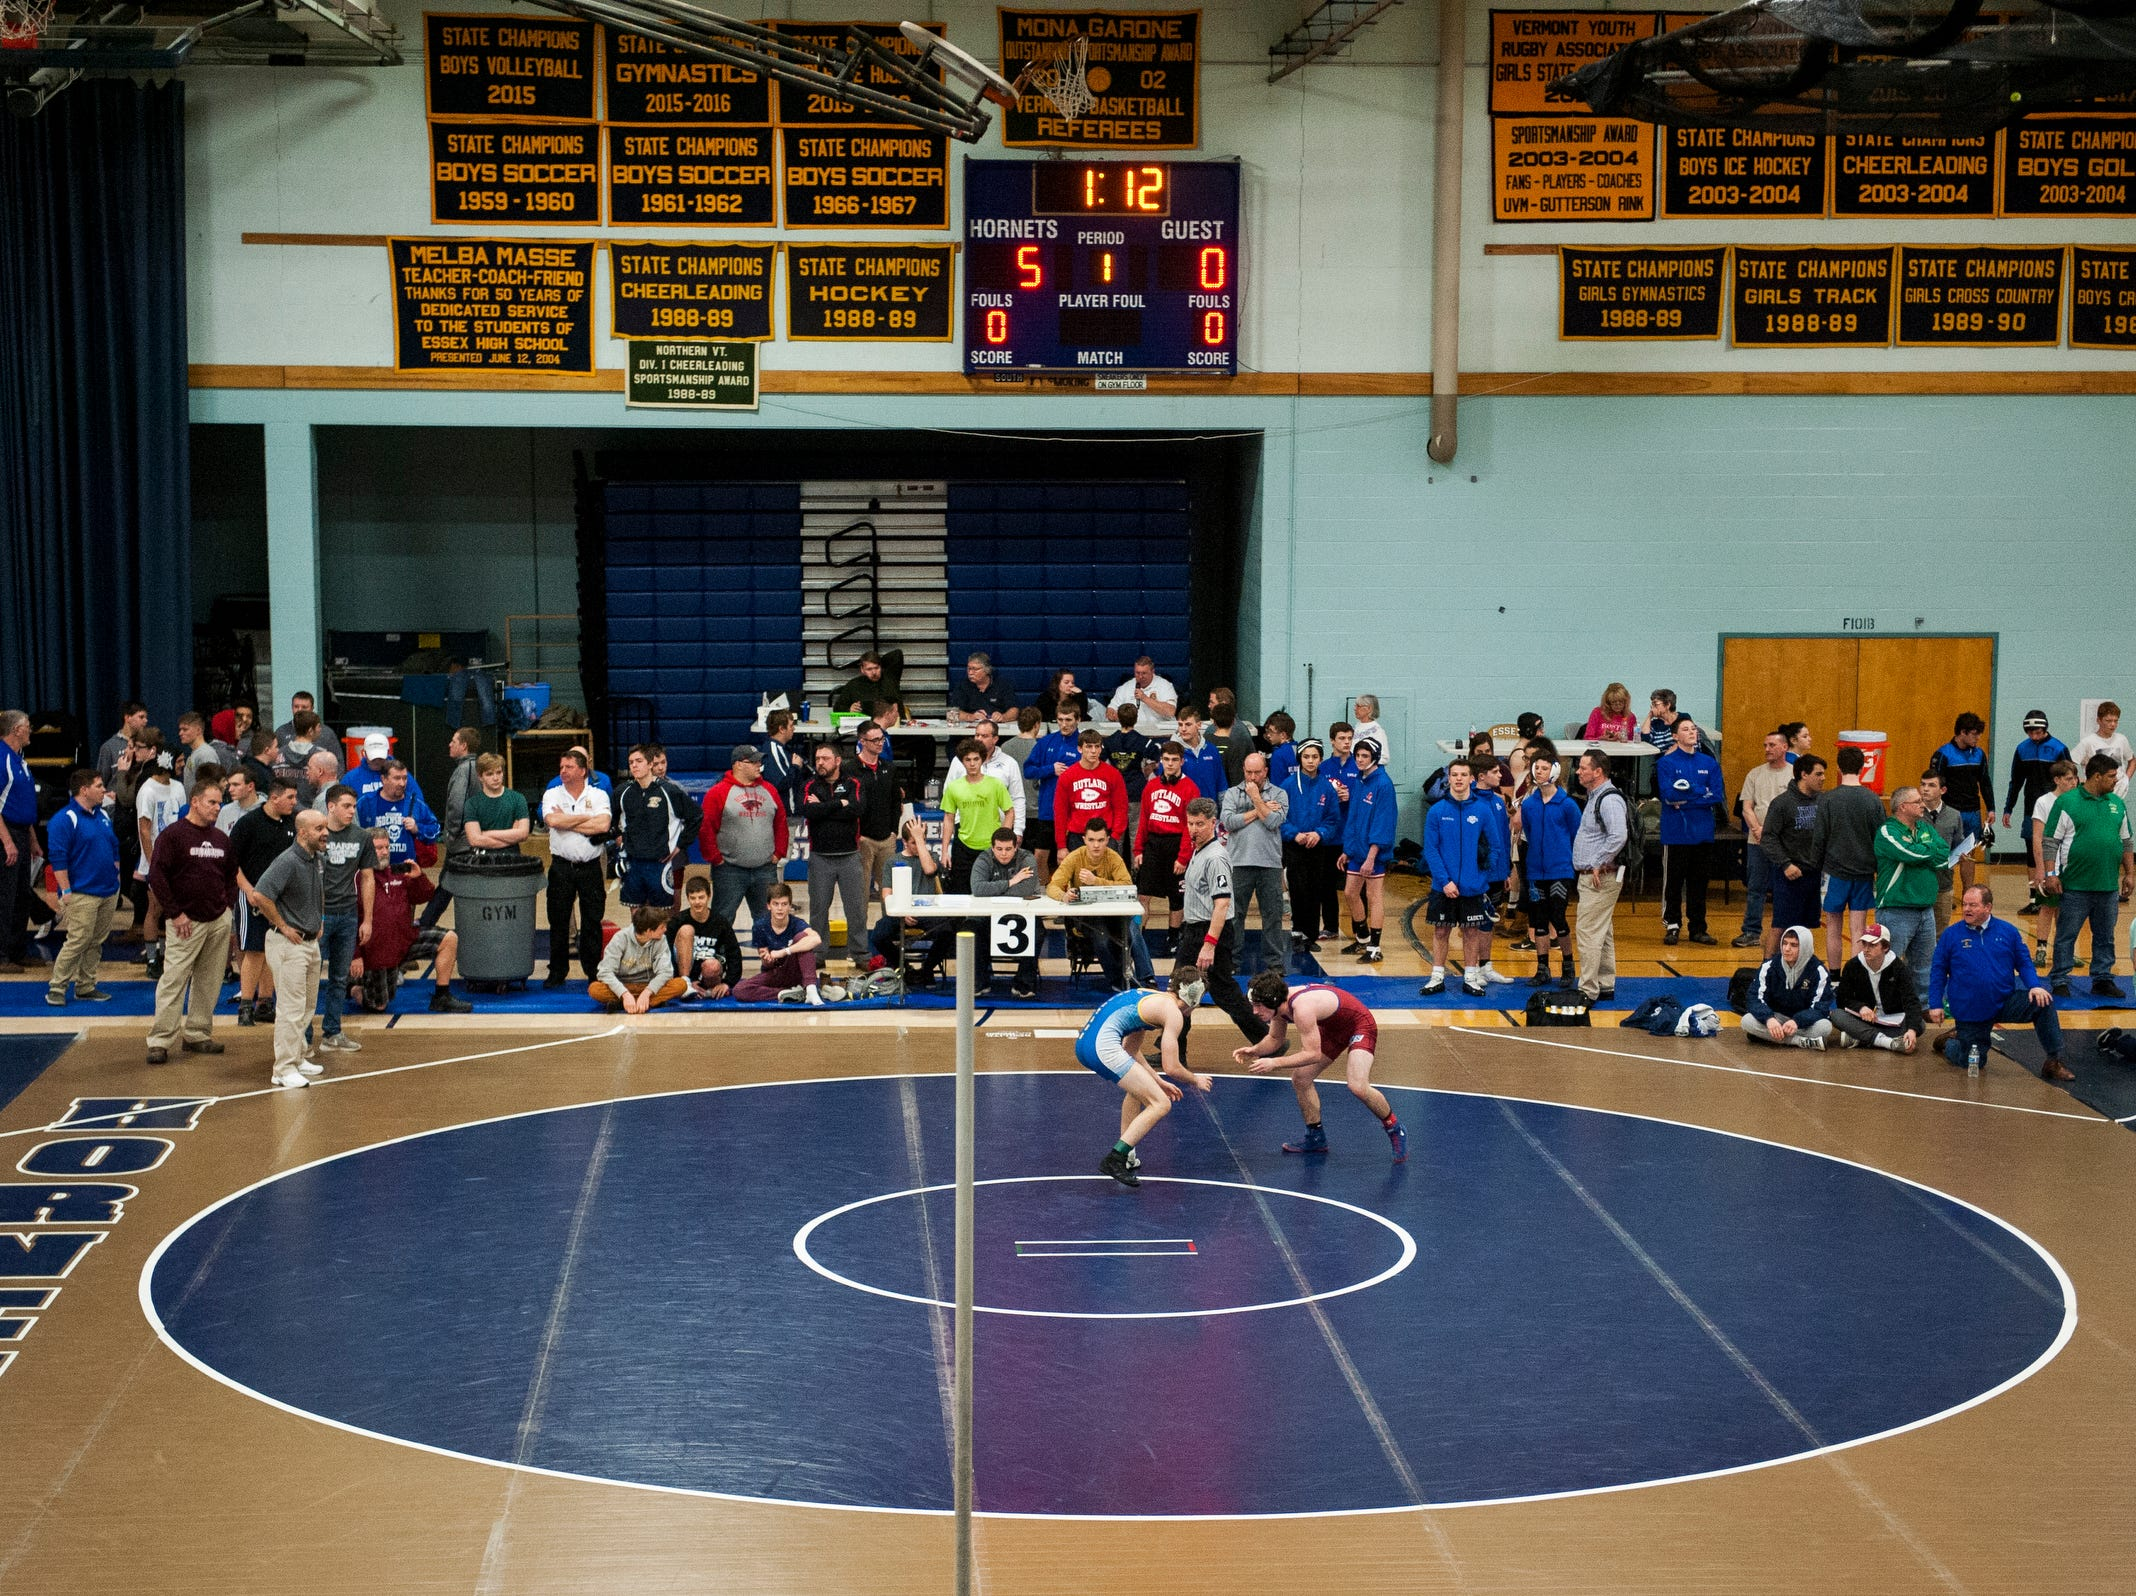 Coaches, teammates and parents watch the wrestling match during the Michael J. Baker Essex Classic wrestling tournament at Essex High School on Friday afternoon January 18, 2019 in Essex, Vermont.